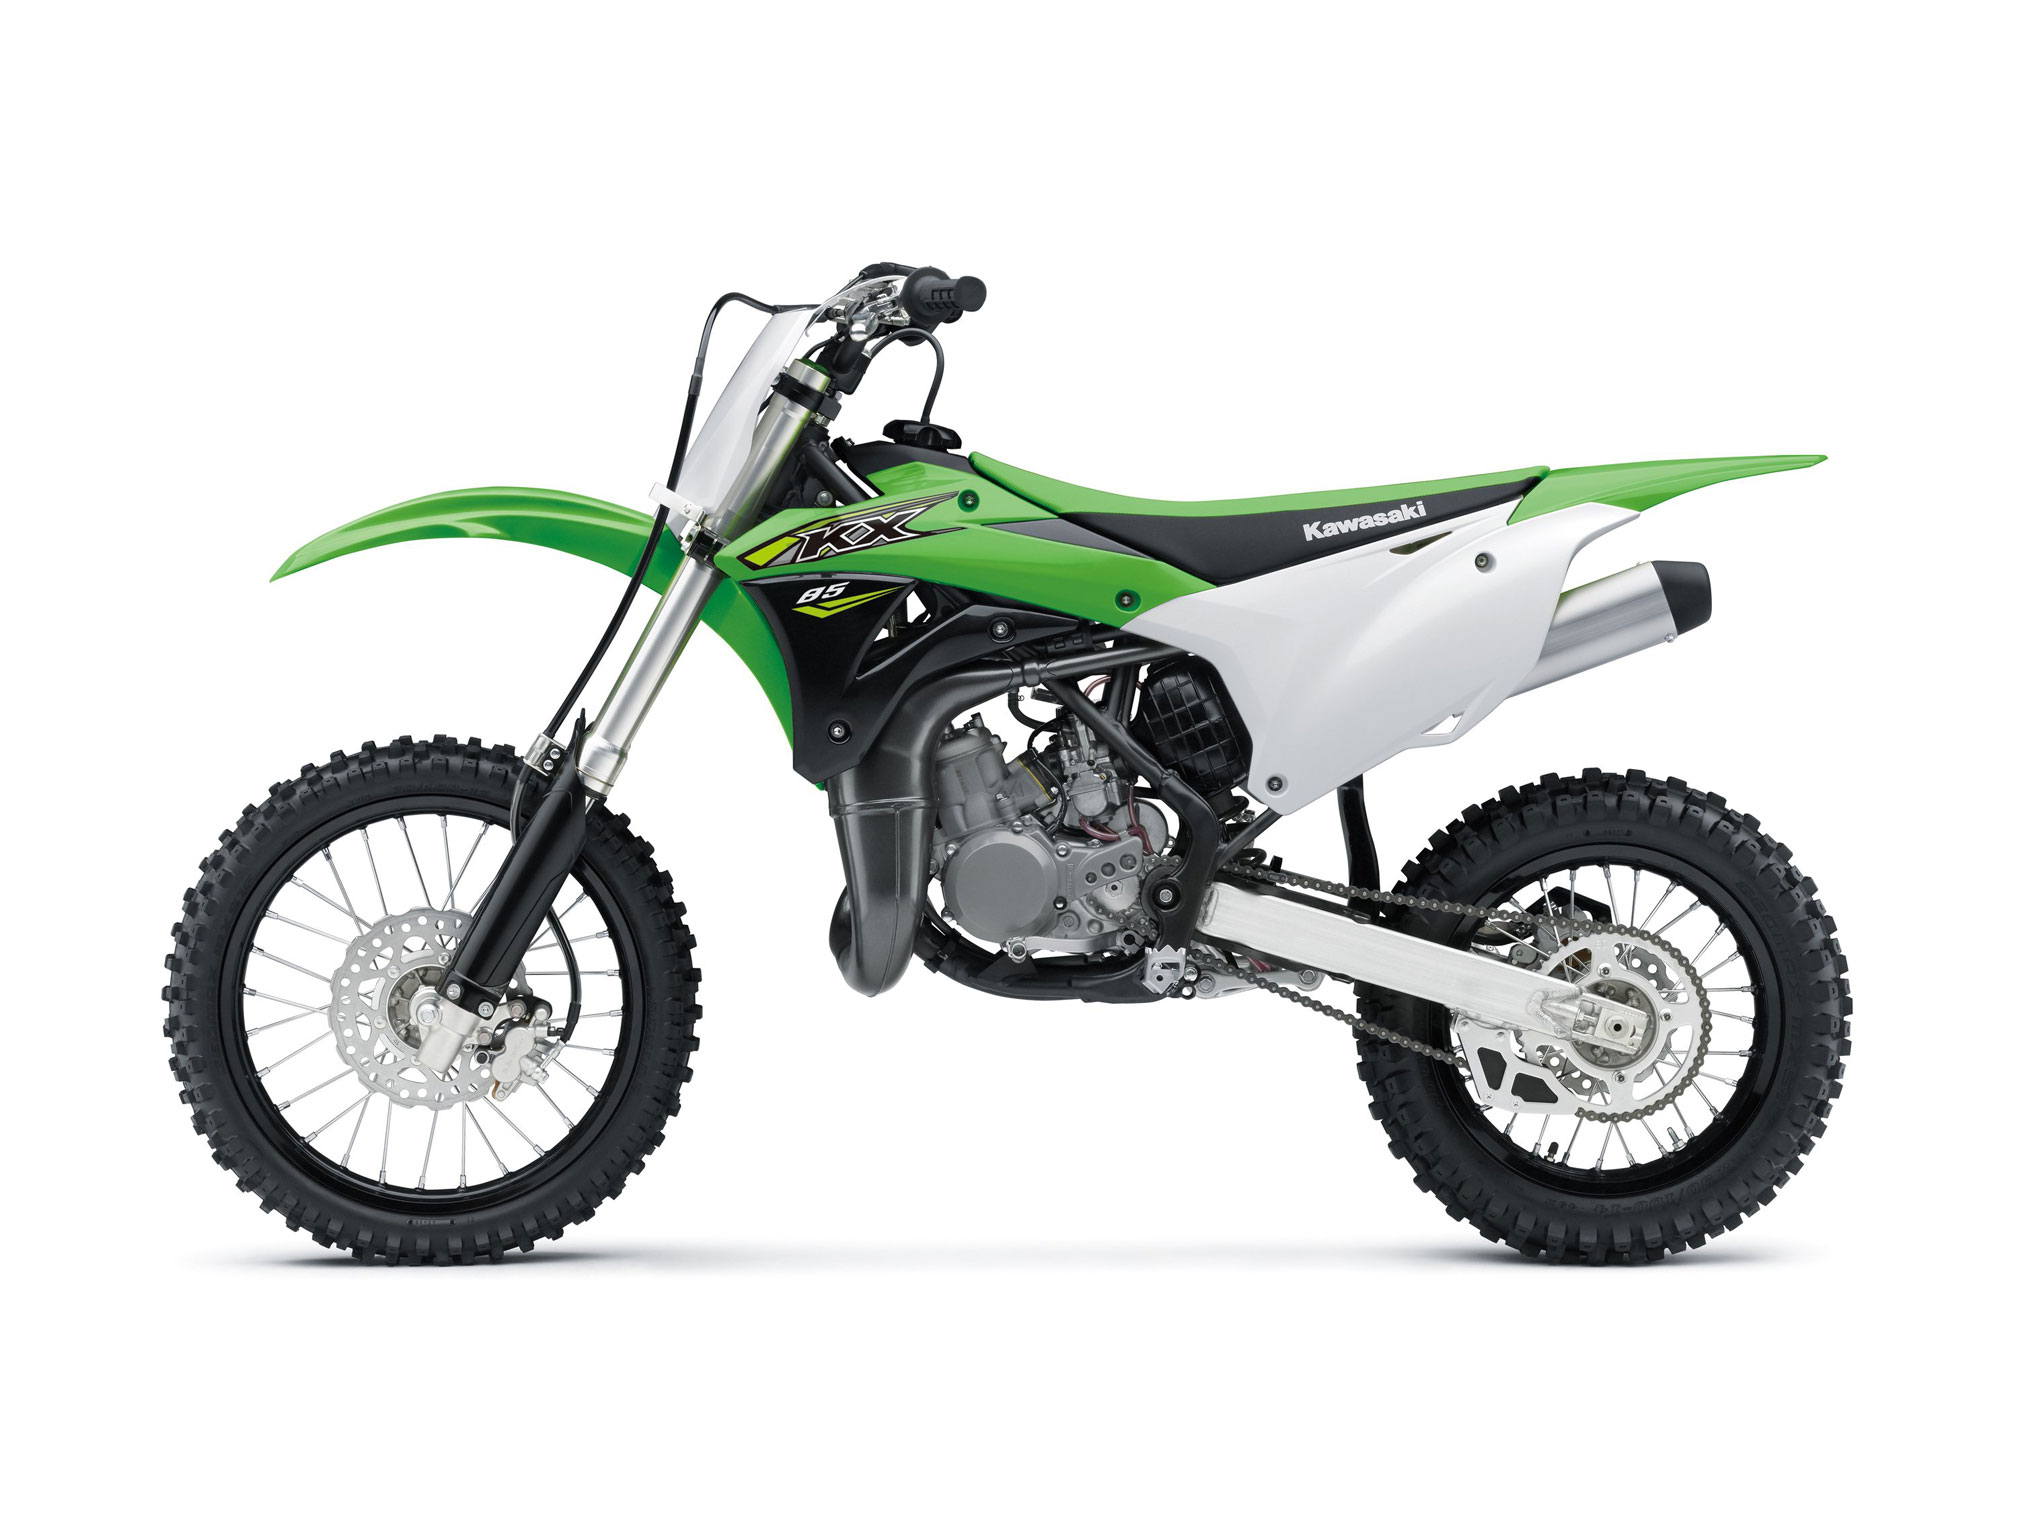 2018 Kawasaki Kx85 Review Totalmotorcycle